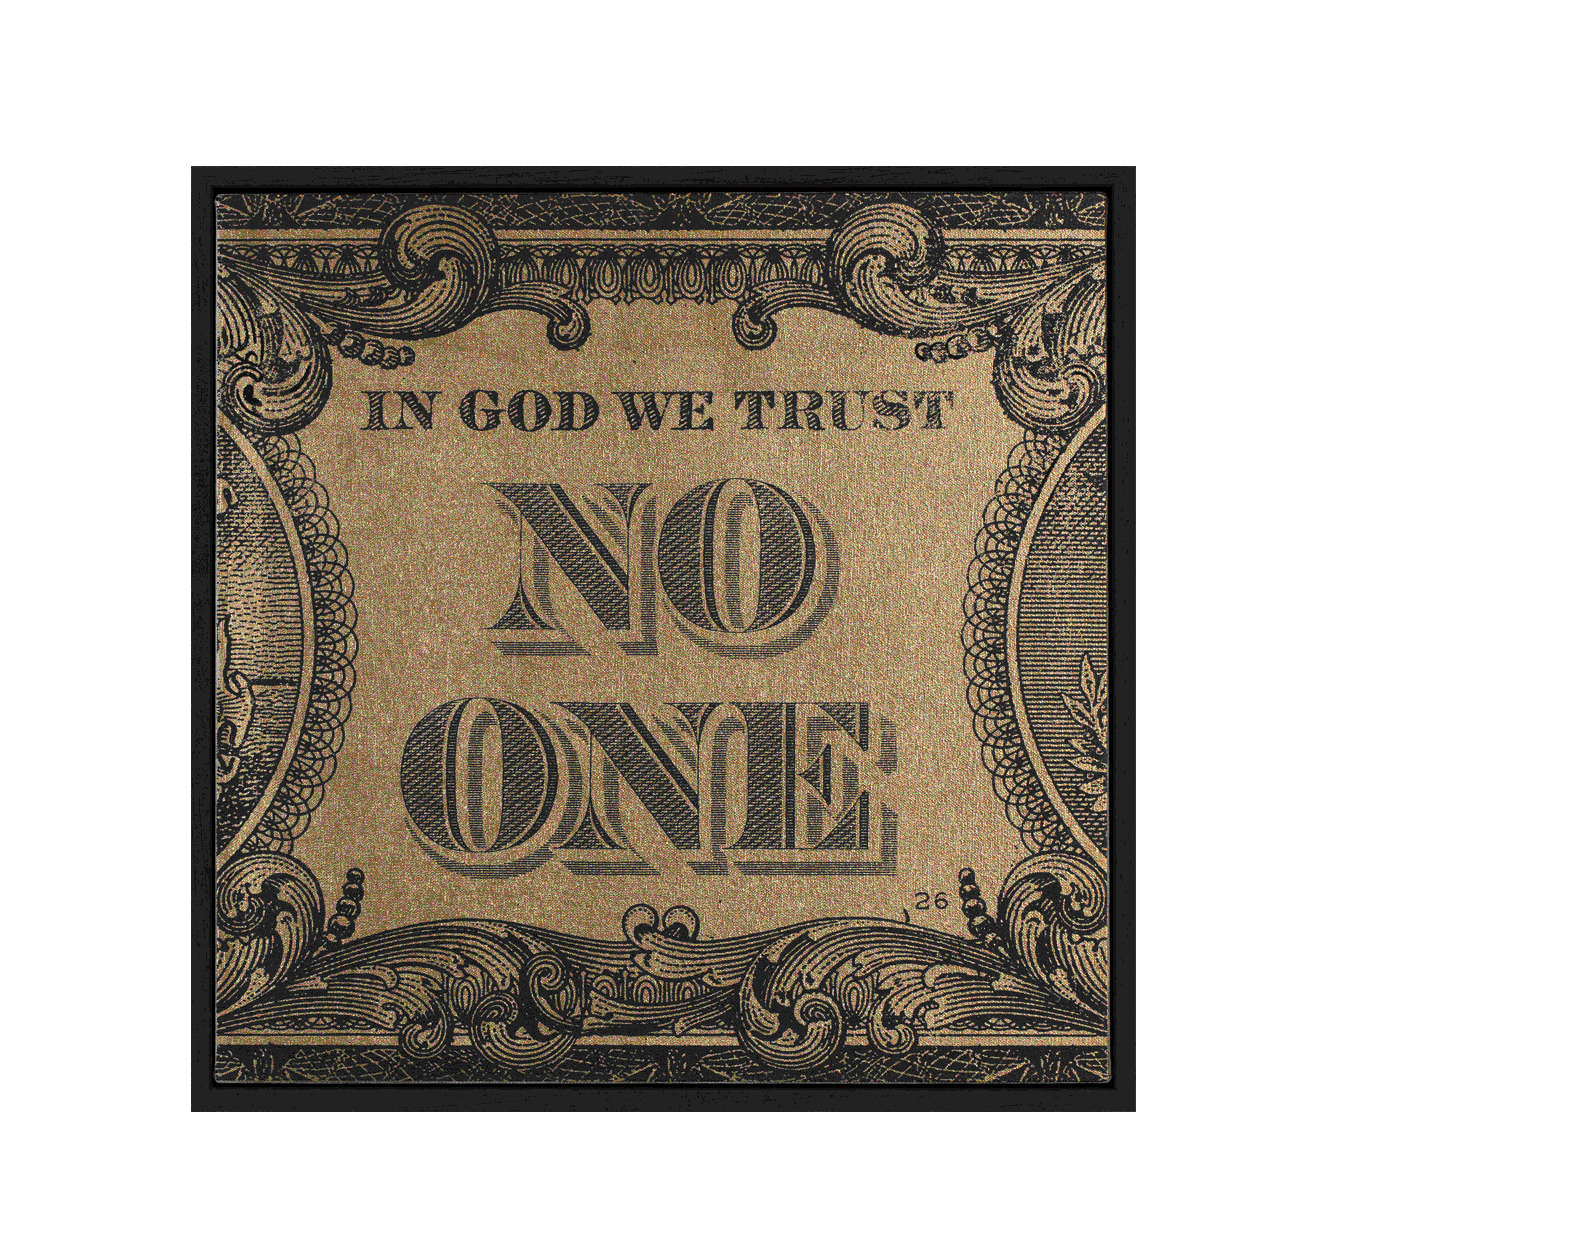 IN GOD WE TRUST NO ONE - Black On Gold - Screen print and acrylic on canvas on wood panel in black wood frame.Signed verso.Image size: 40 x 40 cmFramed size: 42 x 42 x 5 cm£850